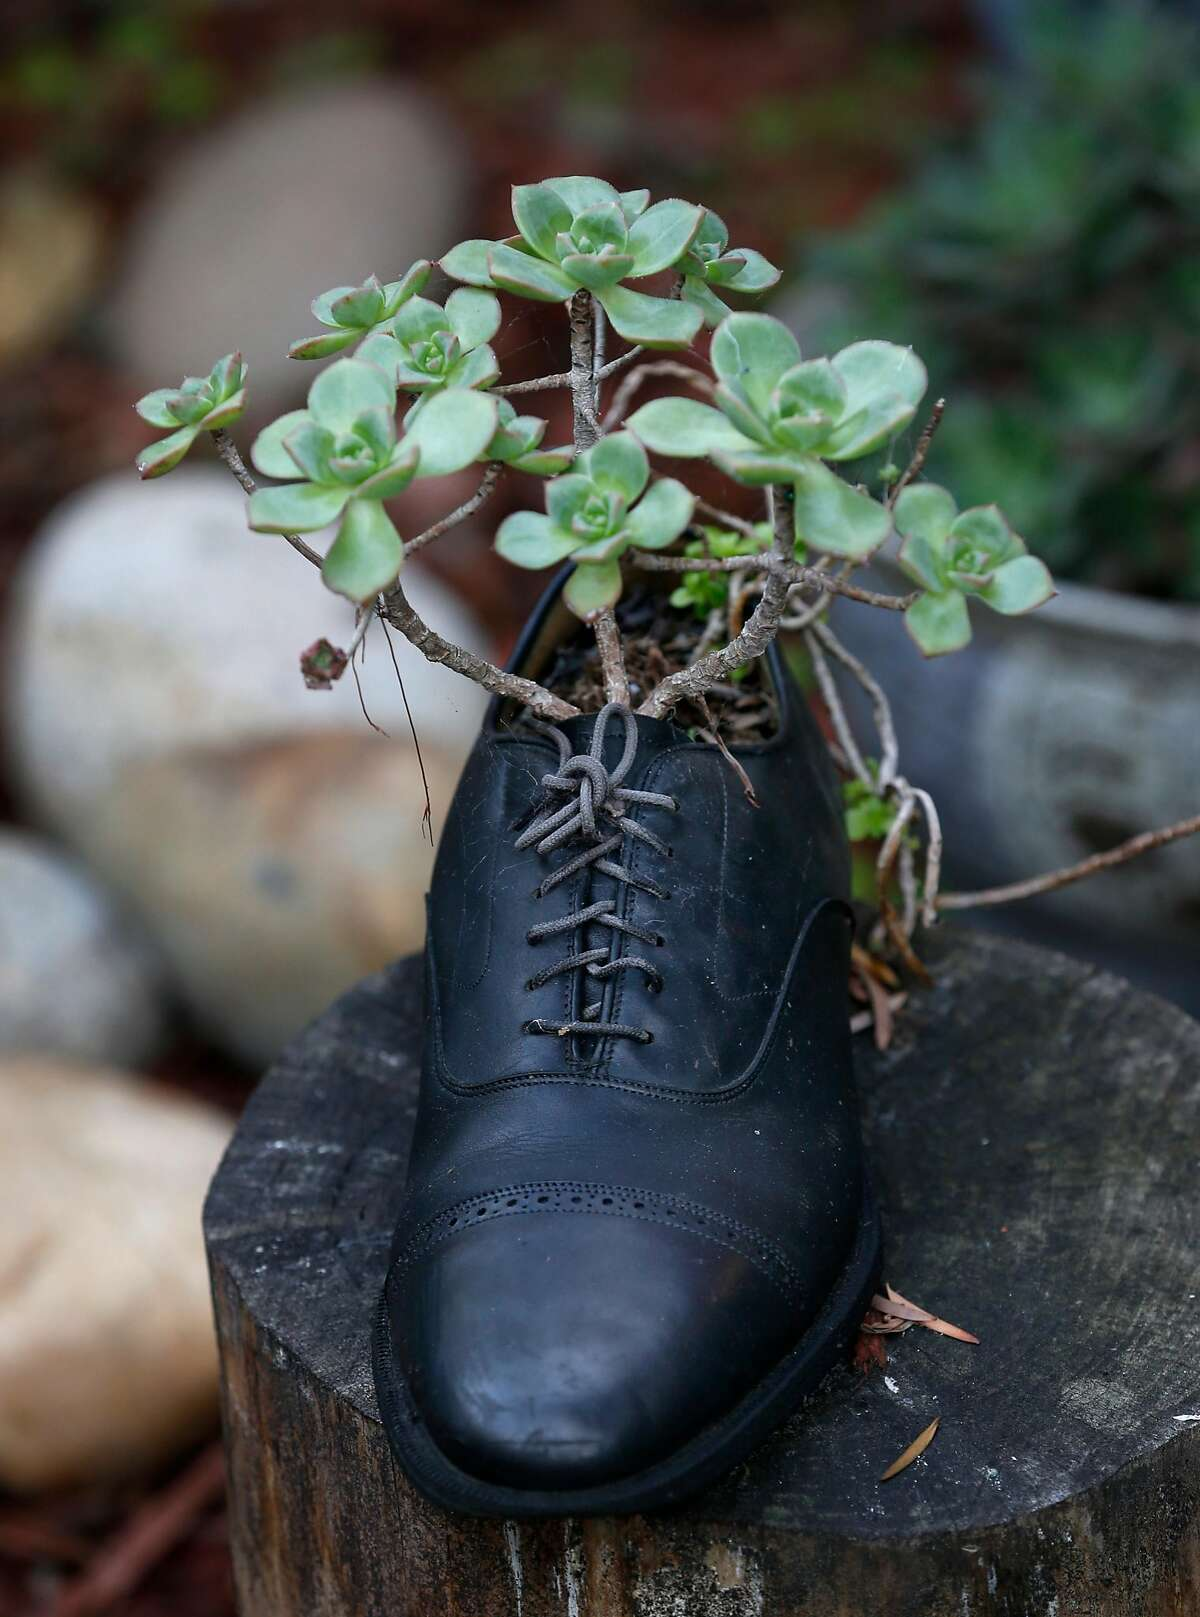 Shoes are used by Ren� Ya�ez as planters throughout the garden he maintains at the SOMArts Cultural Center in San Francisco, Calif. on Saturday, Dec. 2, 2017.